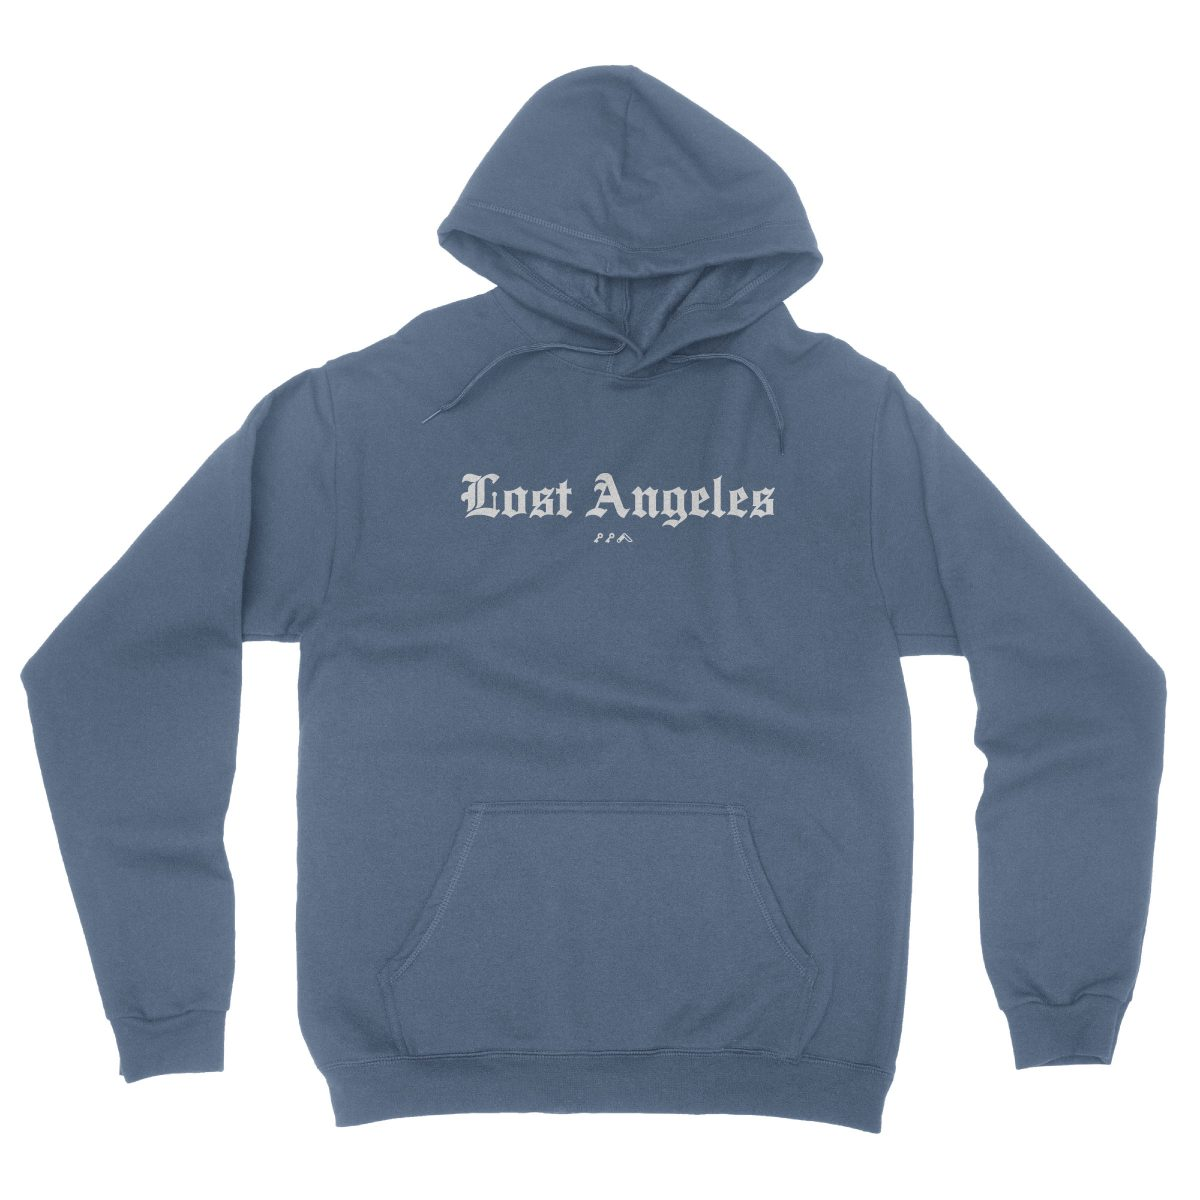 """Lost Angeles"" old english lettering soft hoodies in indigo by KIKICUTT"